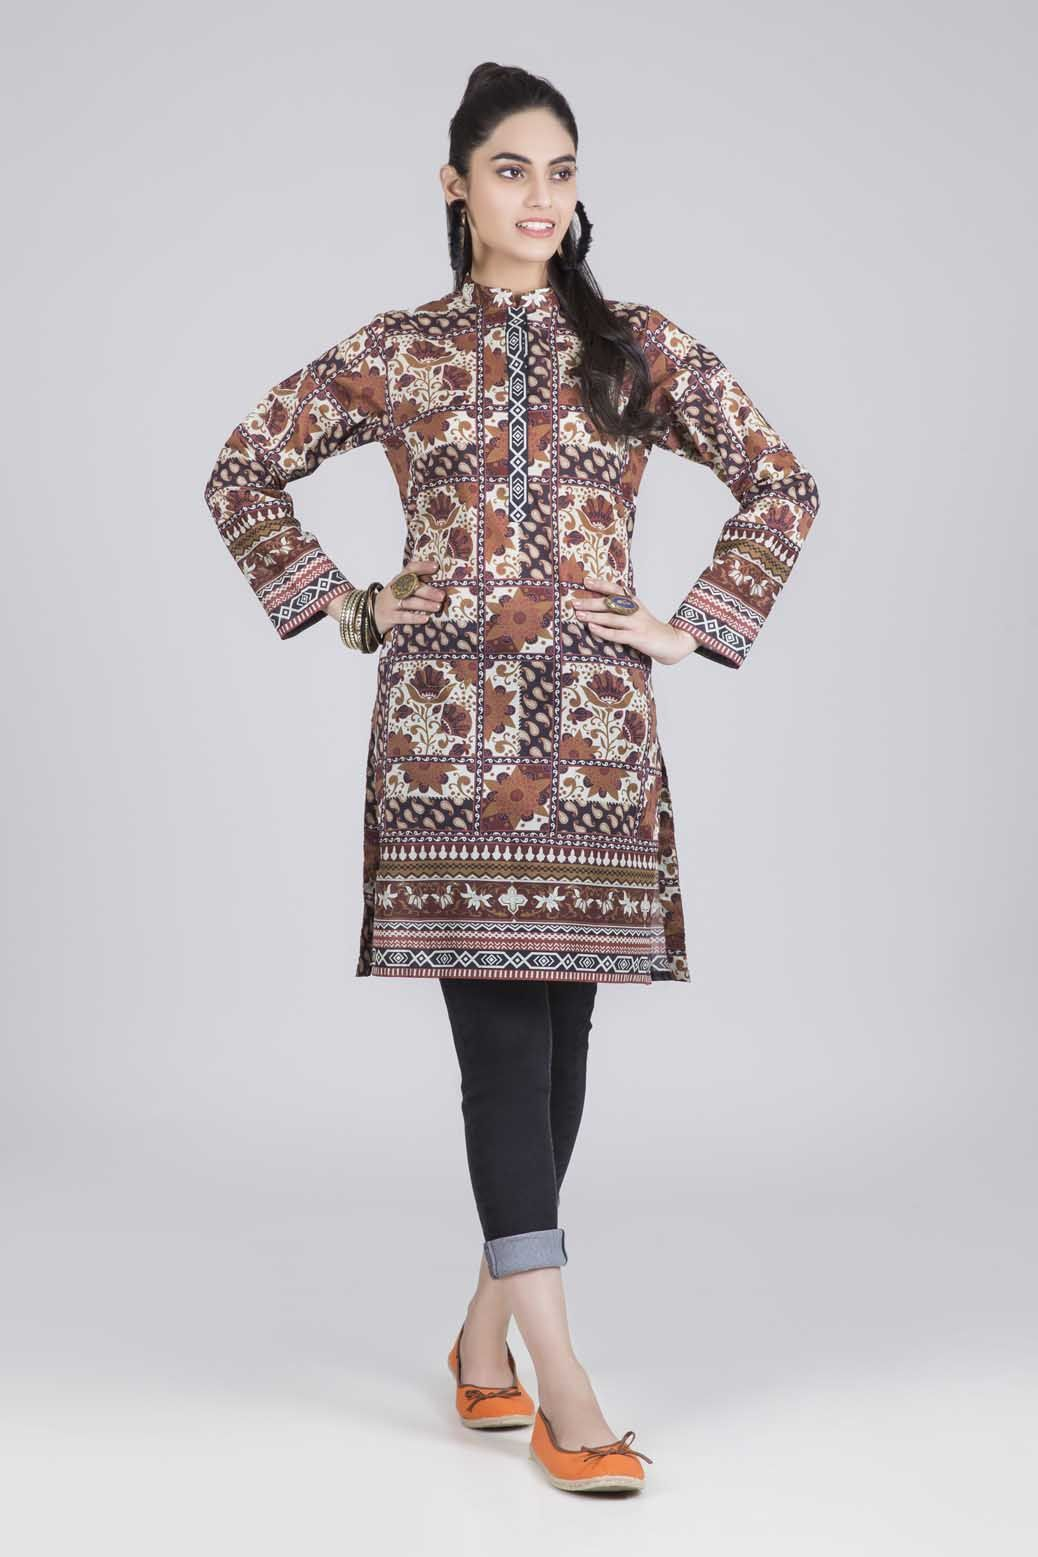 Bonanza Satrangi - Brown Toreador - 1 PC